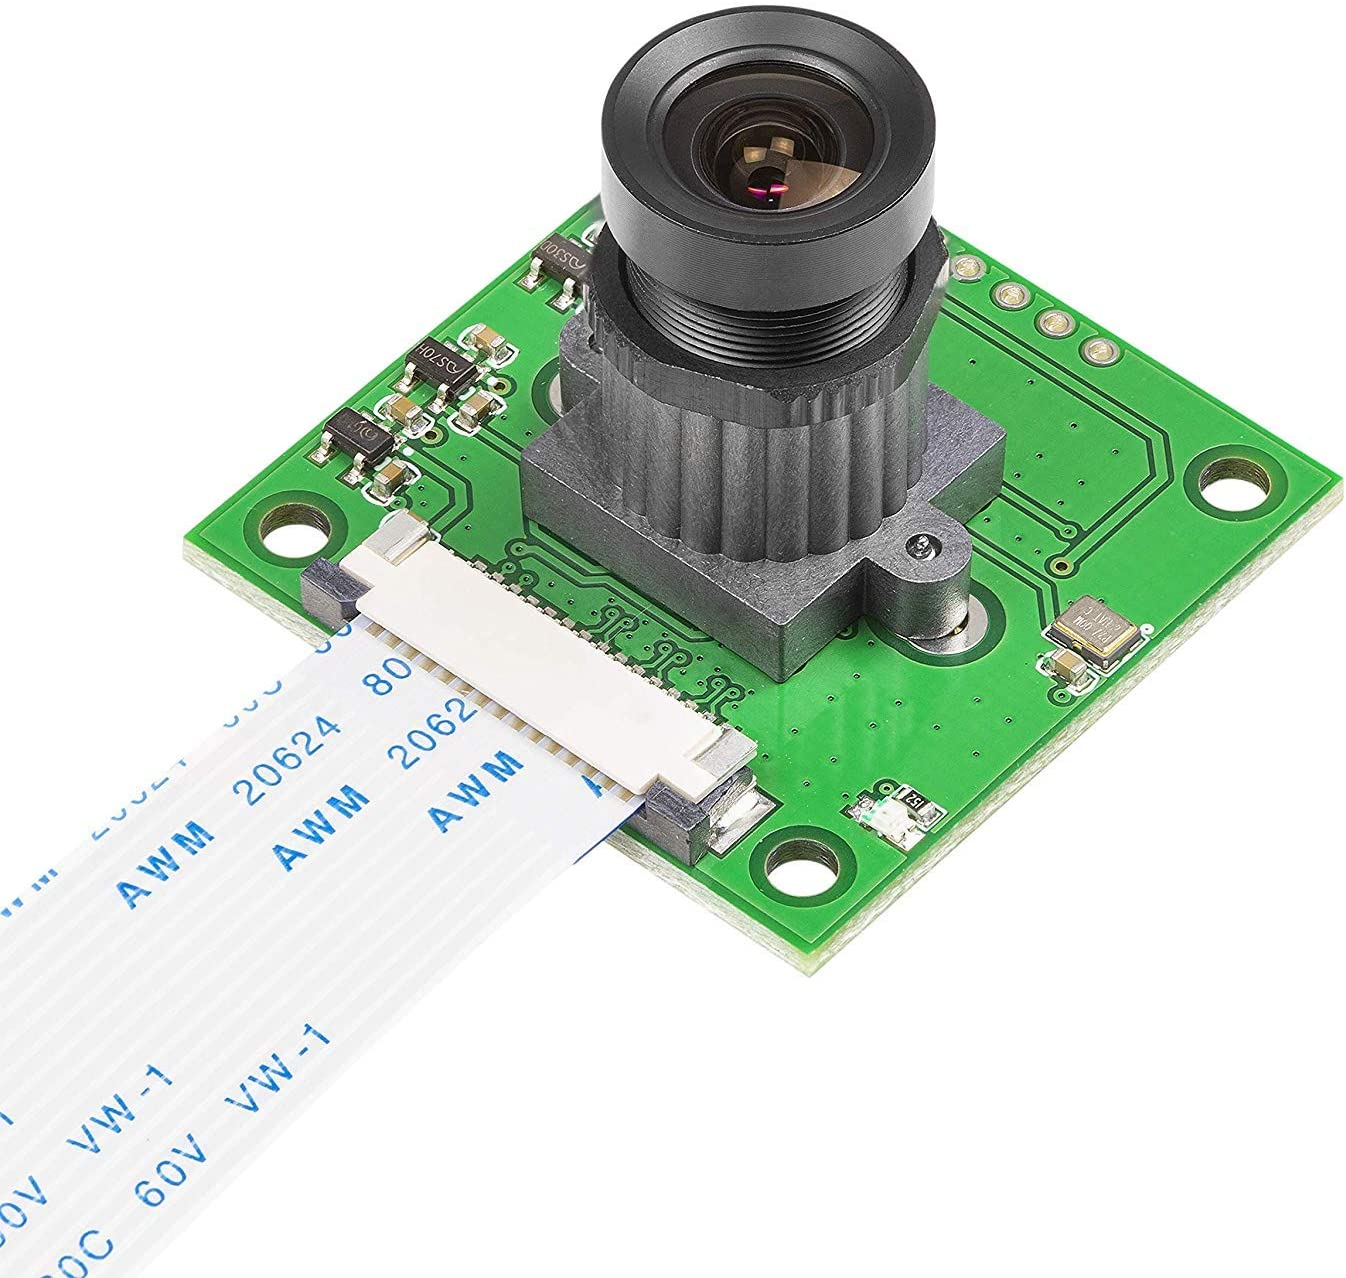 Arducam Lens Beauty products Board for Raspberry and Direct store Adjustable Camera Pi Inter